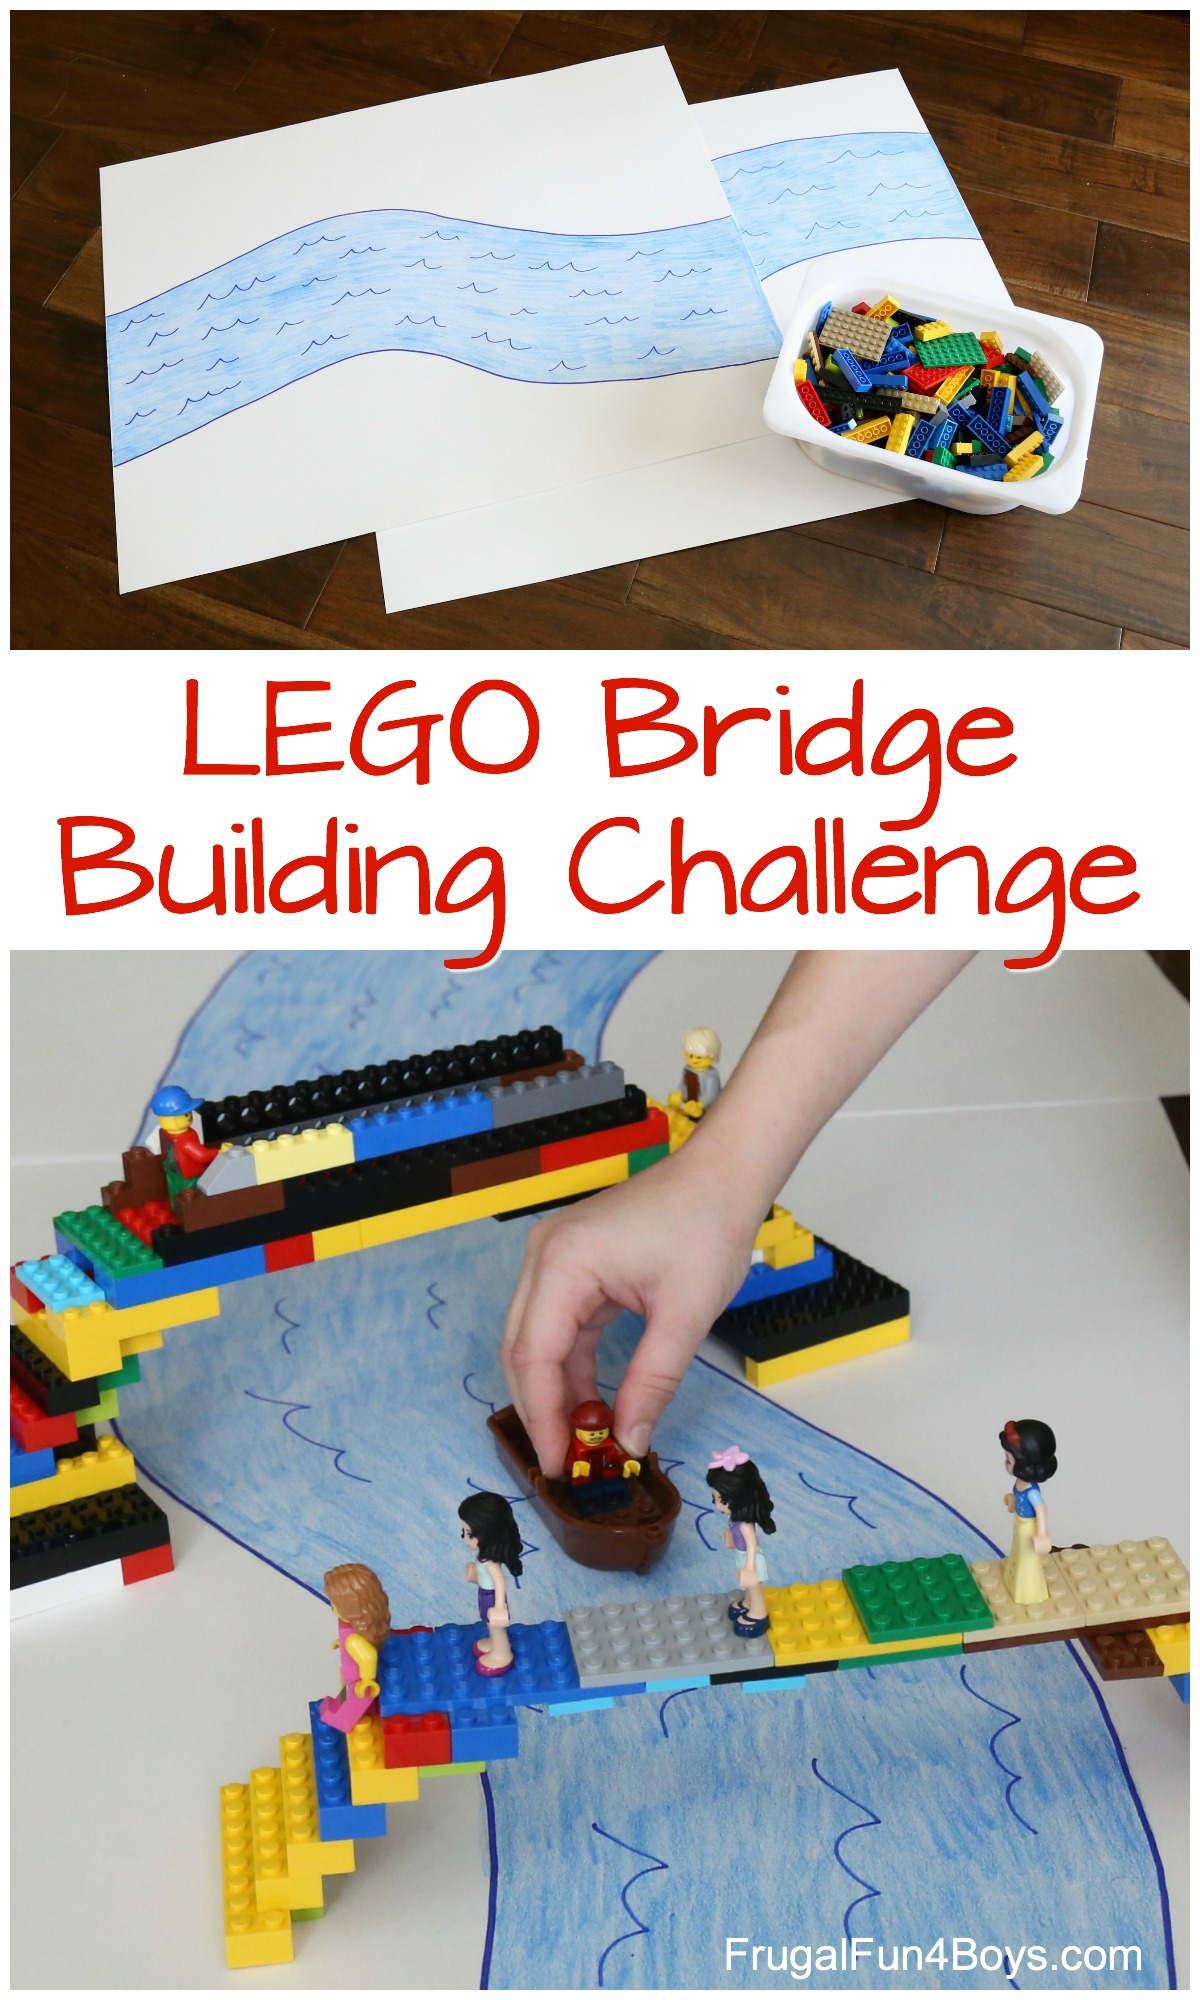 Do A Lego Bridge Building Challenge